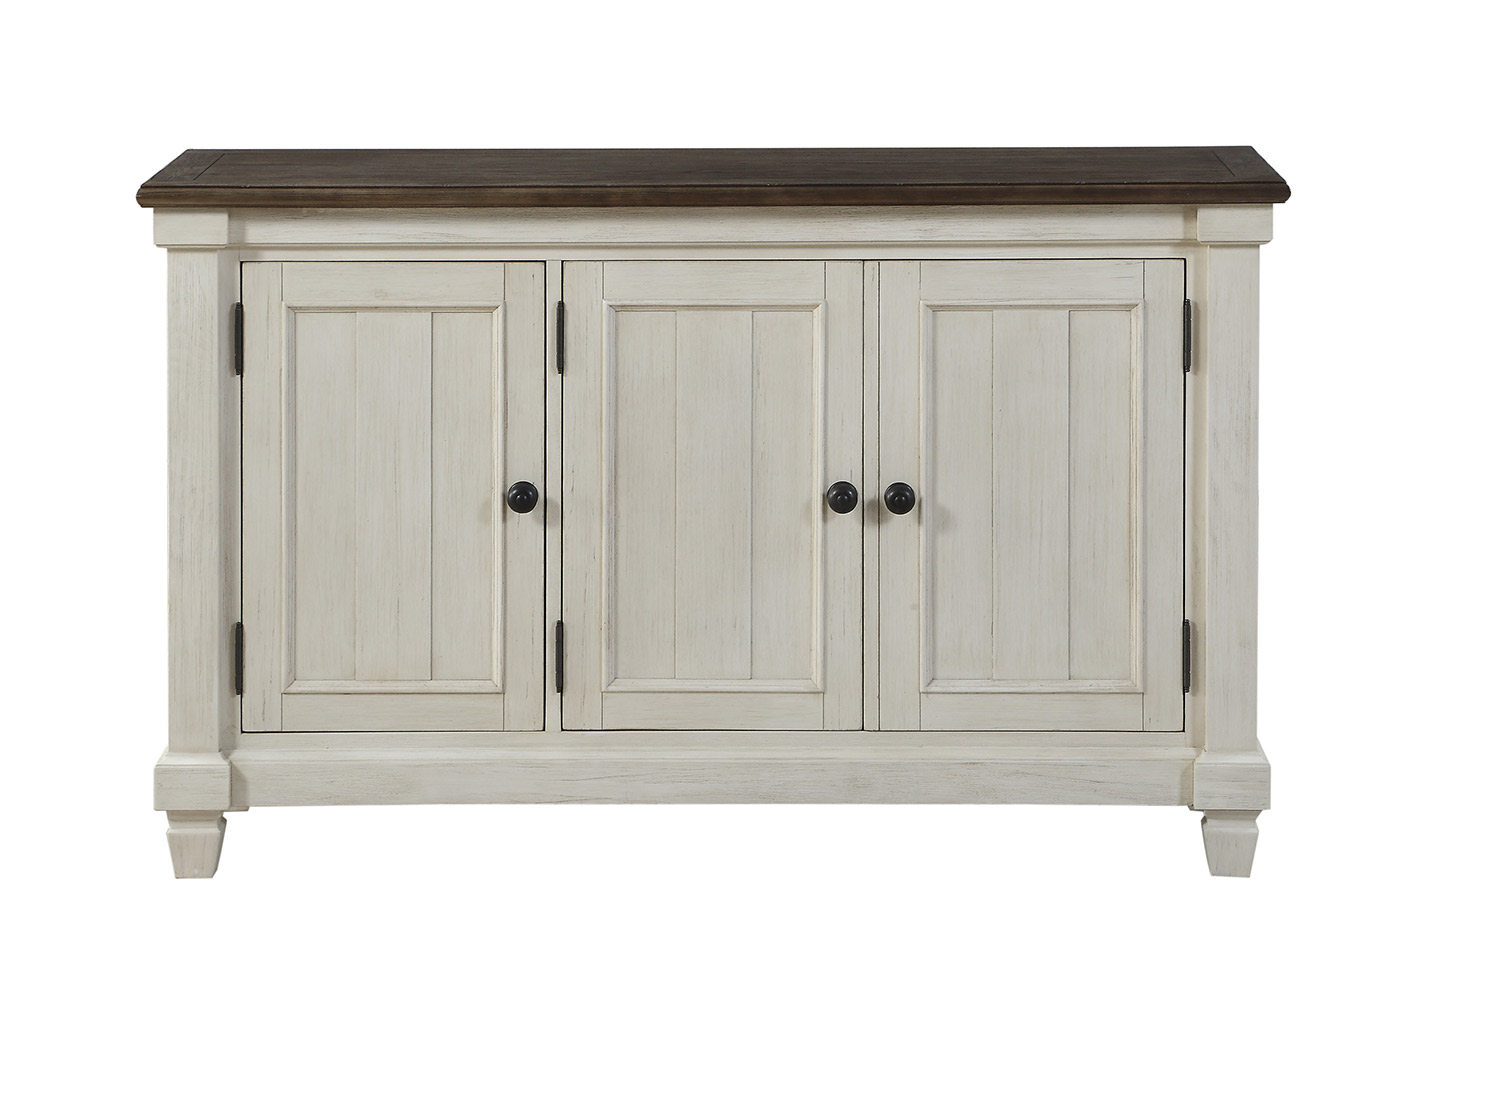 Homelegance Willow Bend Server - Antique White